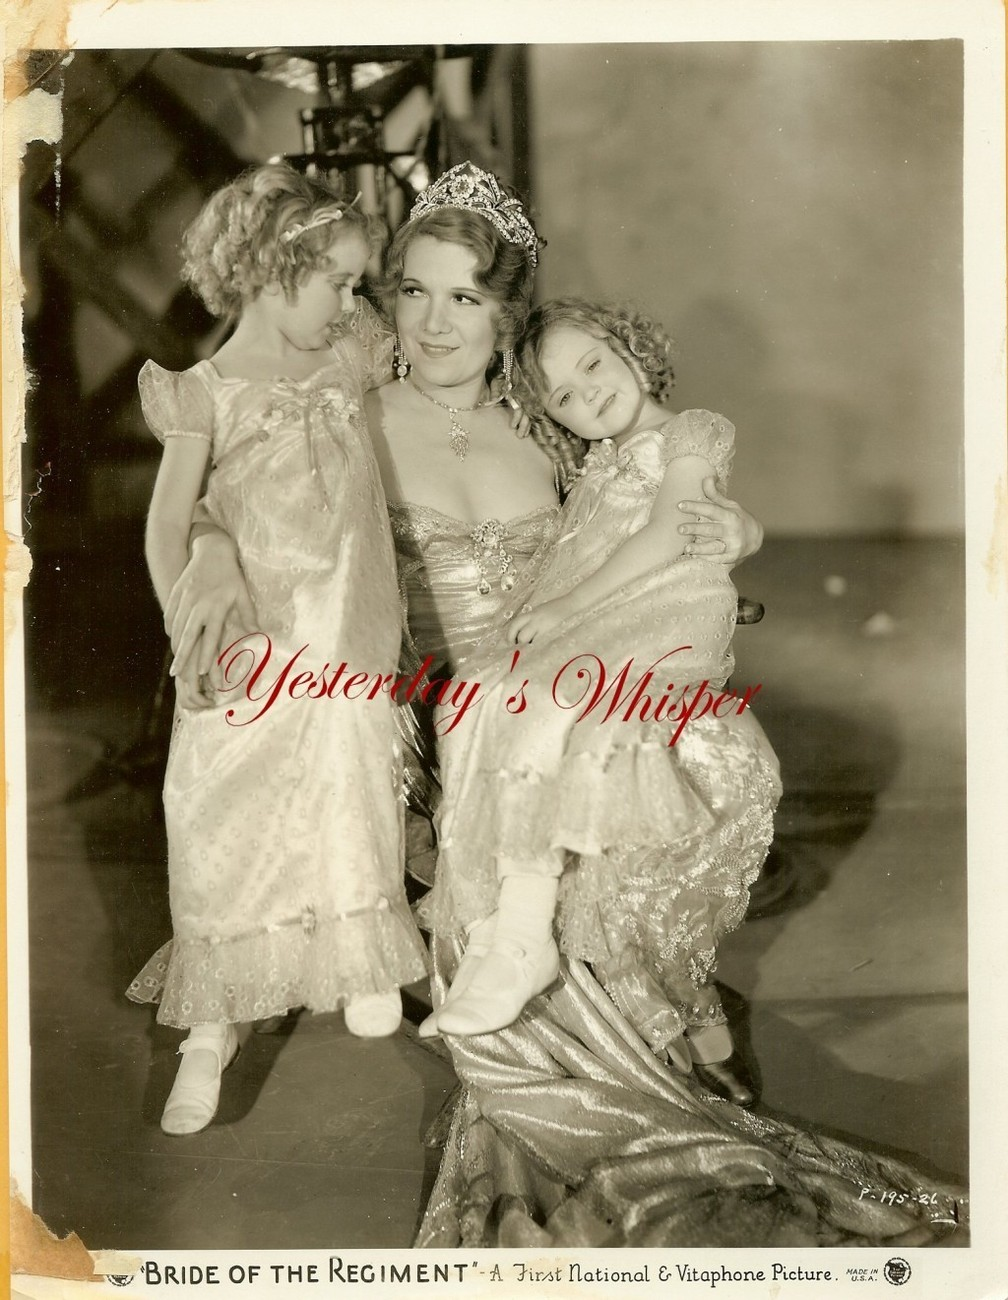 Vivienne Segal 2 Children BRIDE OF THE REGIMENT Original c.1930 Movie Photo